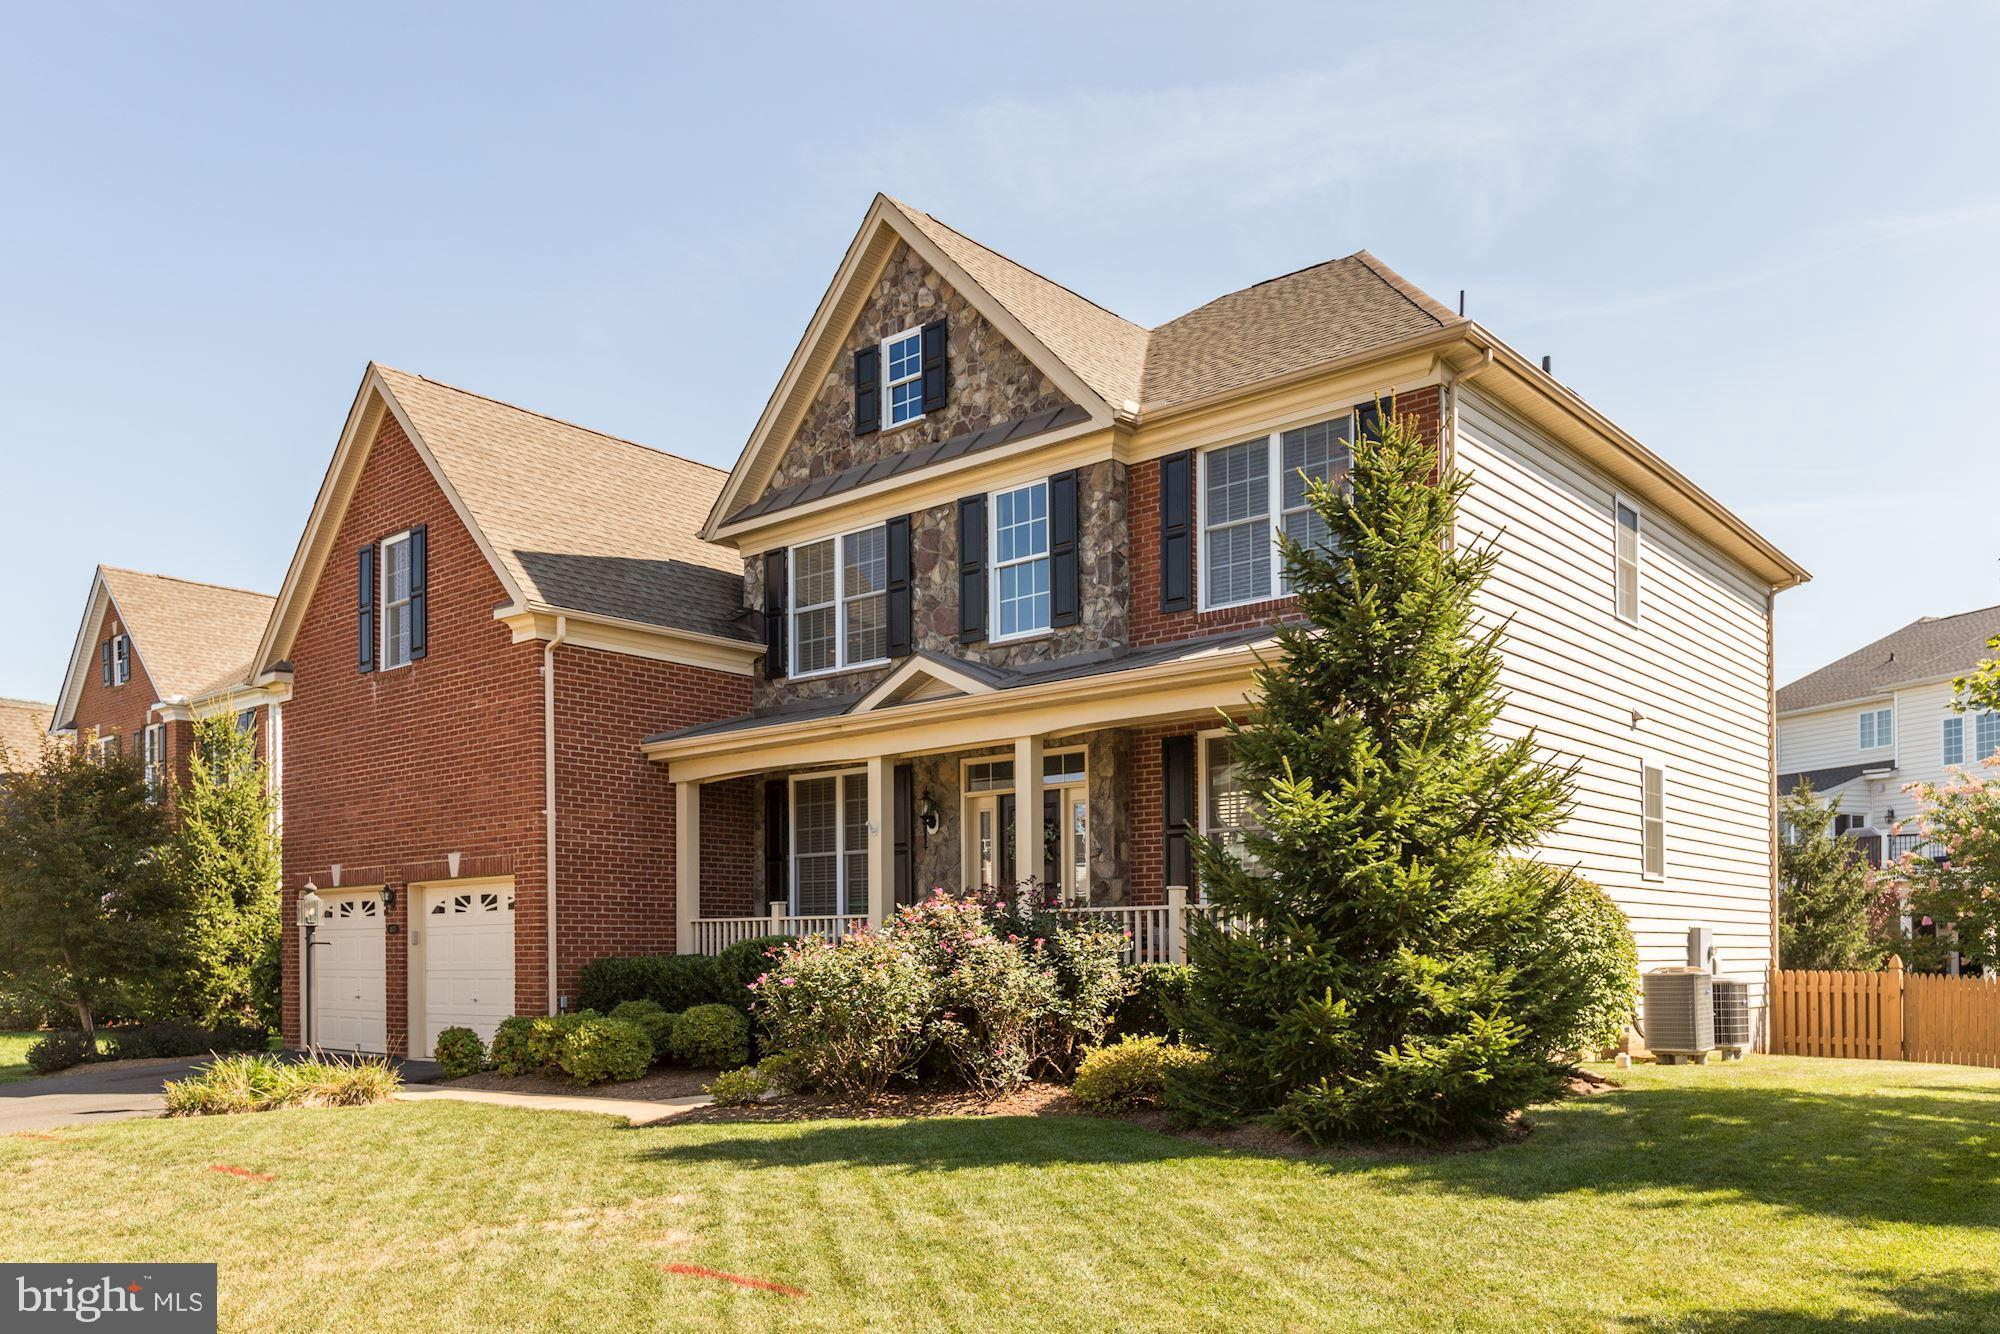 Open House September 22, 2019 from 2-4 P.M.-Incredible Turn Key Masterpiece-Impeccably Maintained and professionally decorated from Top to Bottom-Located on a Quiet Street close to Schools and the Front of the Neighborhood-Regal Stone and Brick Exterior with Front Porch-Professionally Landscaped in the Front and Rear-Large, Flat, Fenced Backyard with Stamped Concrete Patio-Interior Features Include Dark Hardwoods on the Main Level and Upper Hall-Incredible Kitchen with Light Cabinets, Premium Granite, Stainless Steel Appliances, Custom Pendants-Upgraded Lighting Fixture Throughout the Entire Home-Amazing Rear Sun Room off Kitchen-Grand Two Story Foyer and Family Room-Extensive Molding in all Formal Spaces-Spacious Secondary Bedrooms with 3 Full Baths on the Upper Level-Expansive Owner's Suite with Tray Ceiling, Dual Walk-In Closets-and Cozy Spa Like Owner's Bath-The Lower Level Features a Massive Recreation Room, Full Bath and Extensive Storage-All of the Amenities and Security of Dominion Valley and Turn Key Perfection!